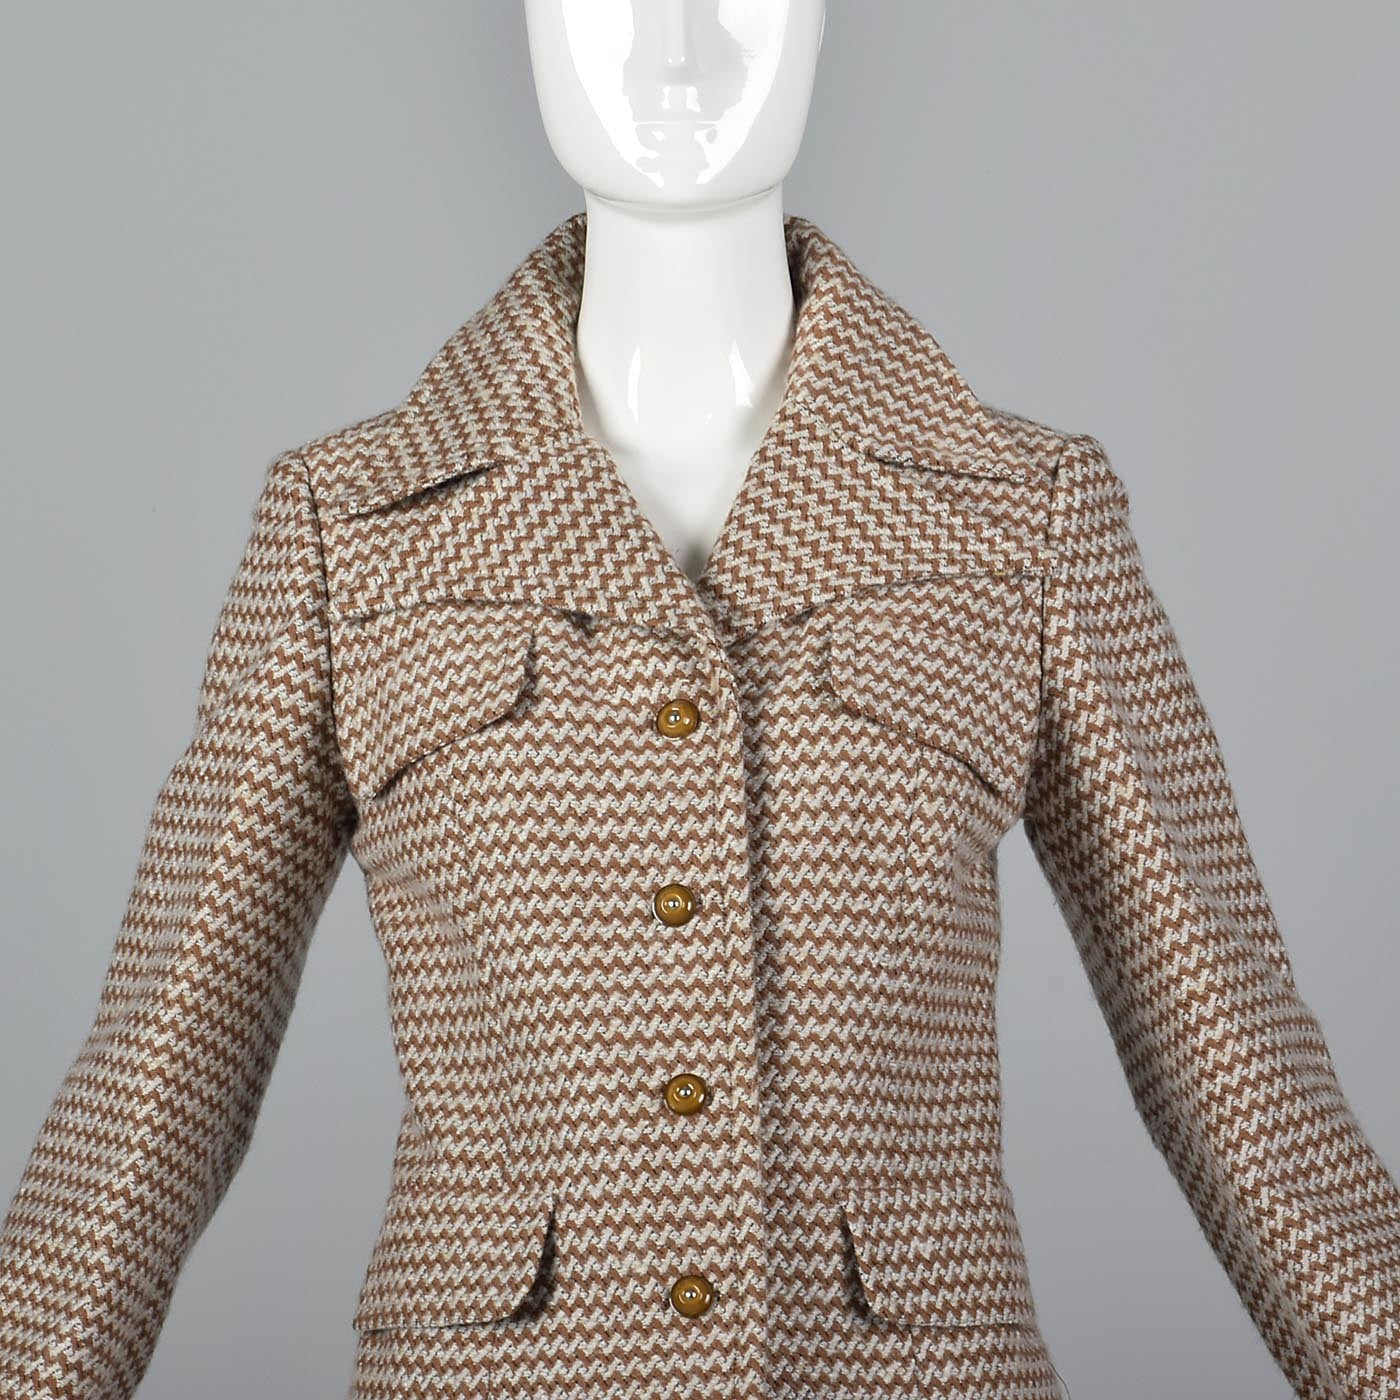 1970s Via Veneto Couture Boutique Tweed Skirt Suit